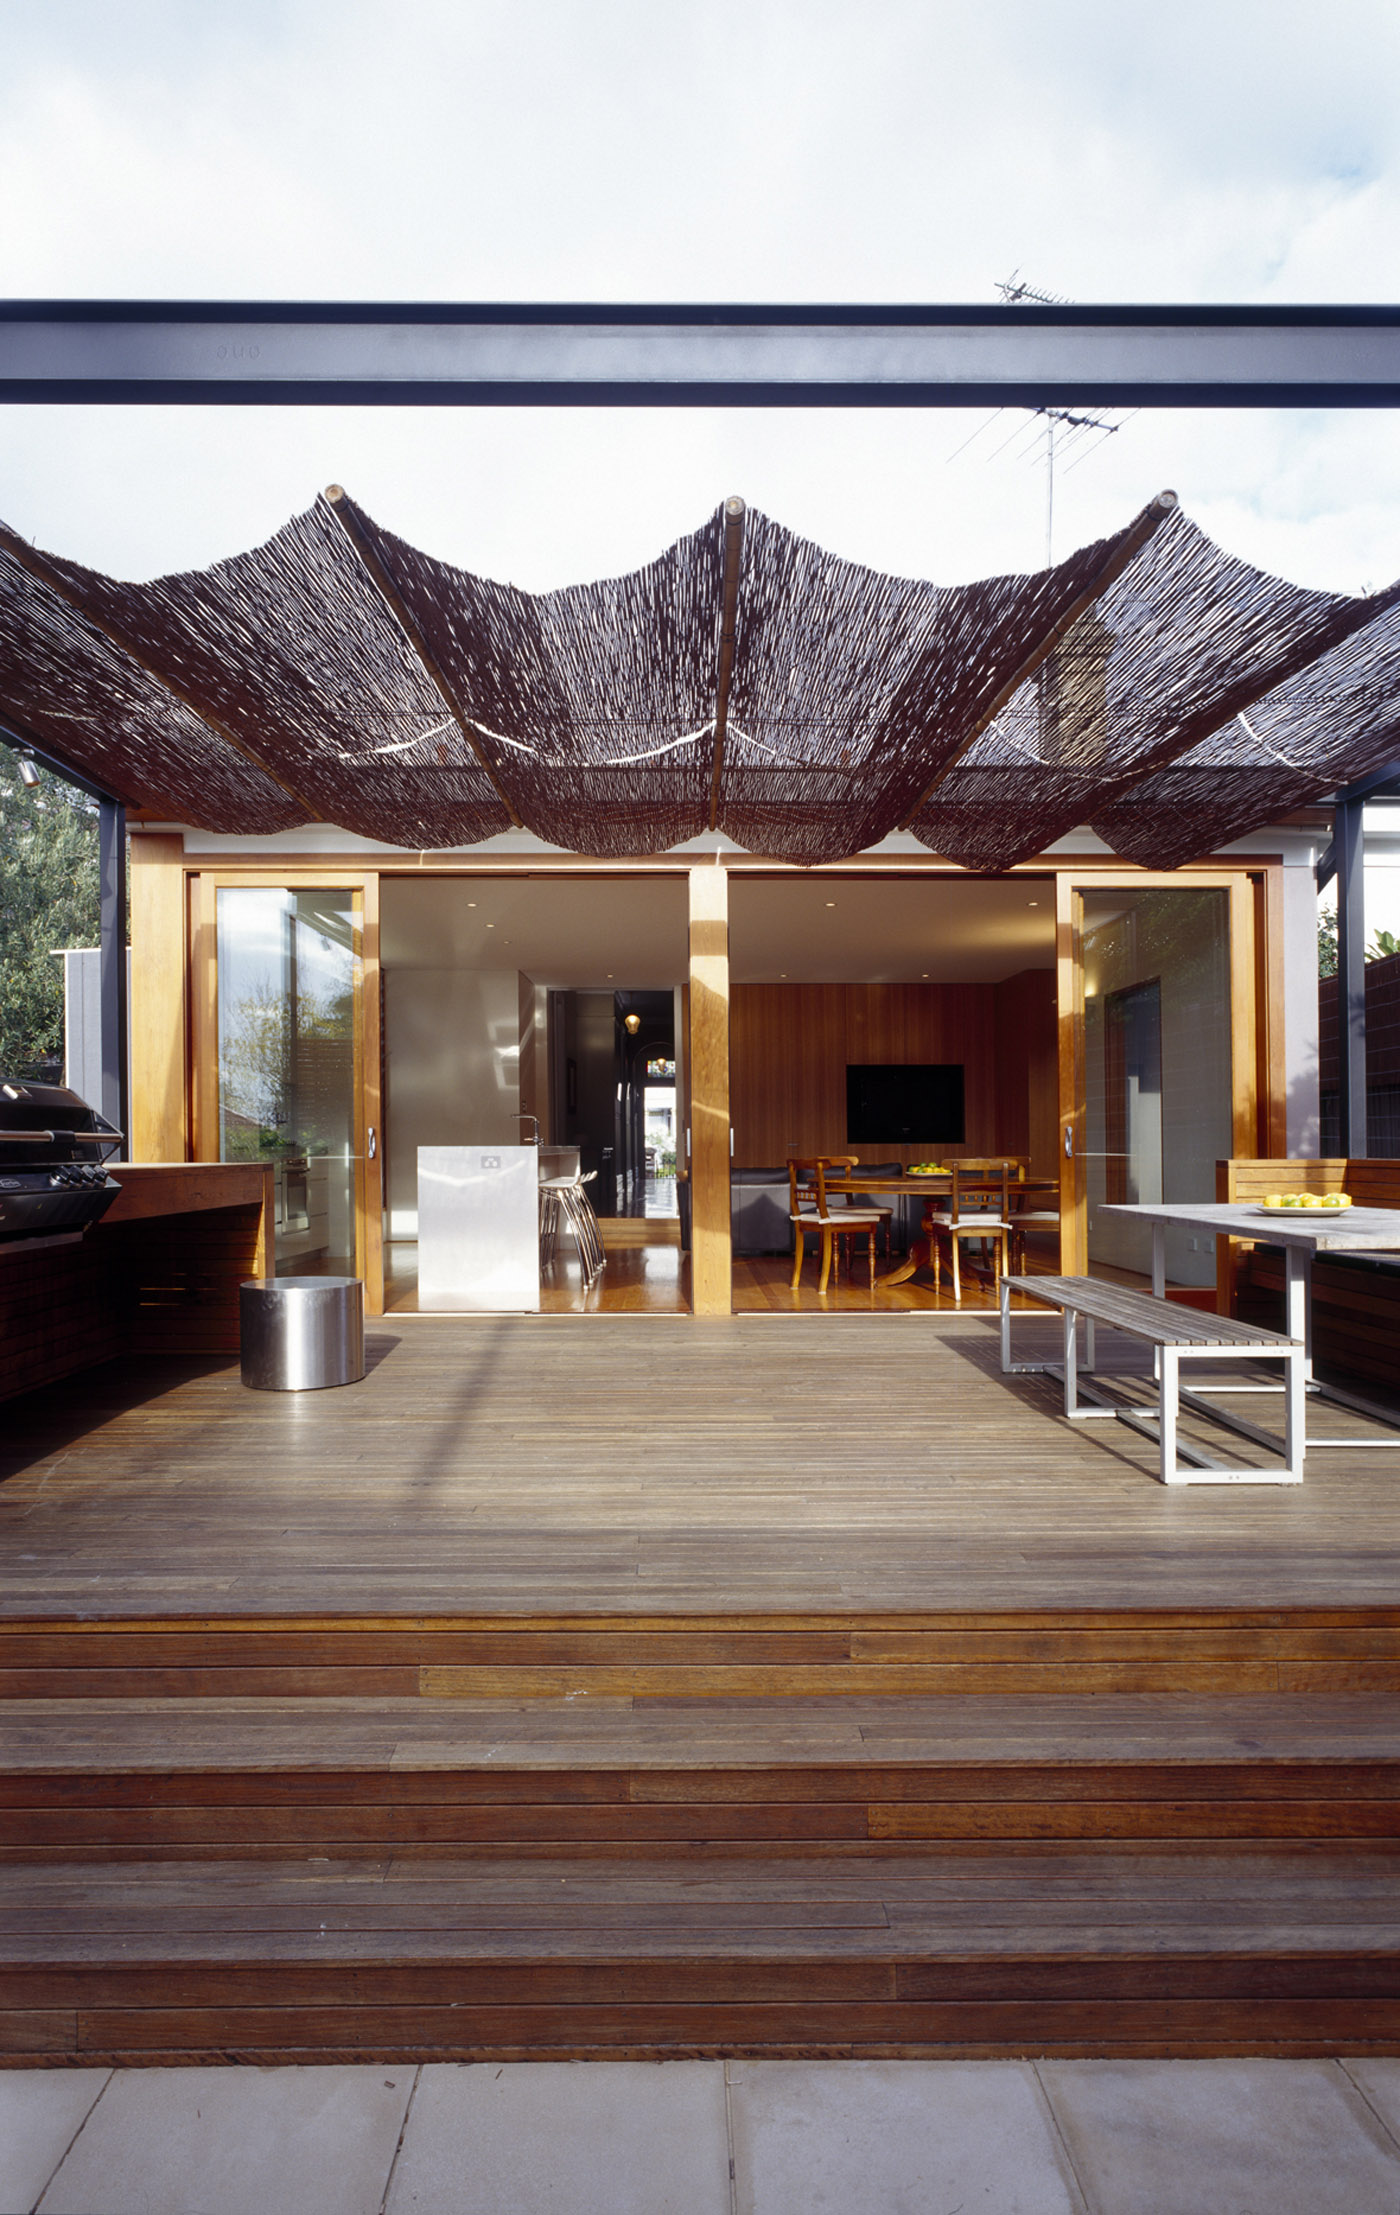 Cooper House by Sydney award winning residential architecture office Sam Crawford Architects. Timber decking with cane reed shading pergola looking into kitchen and dining space